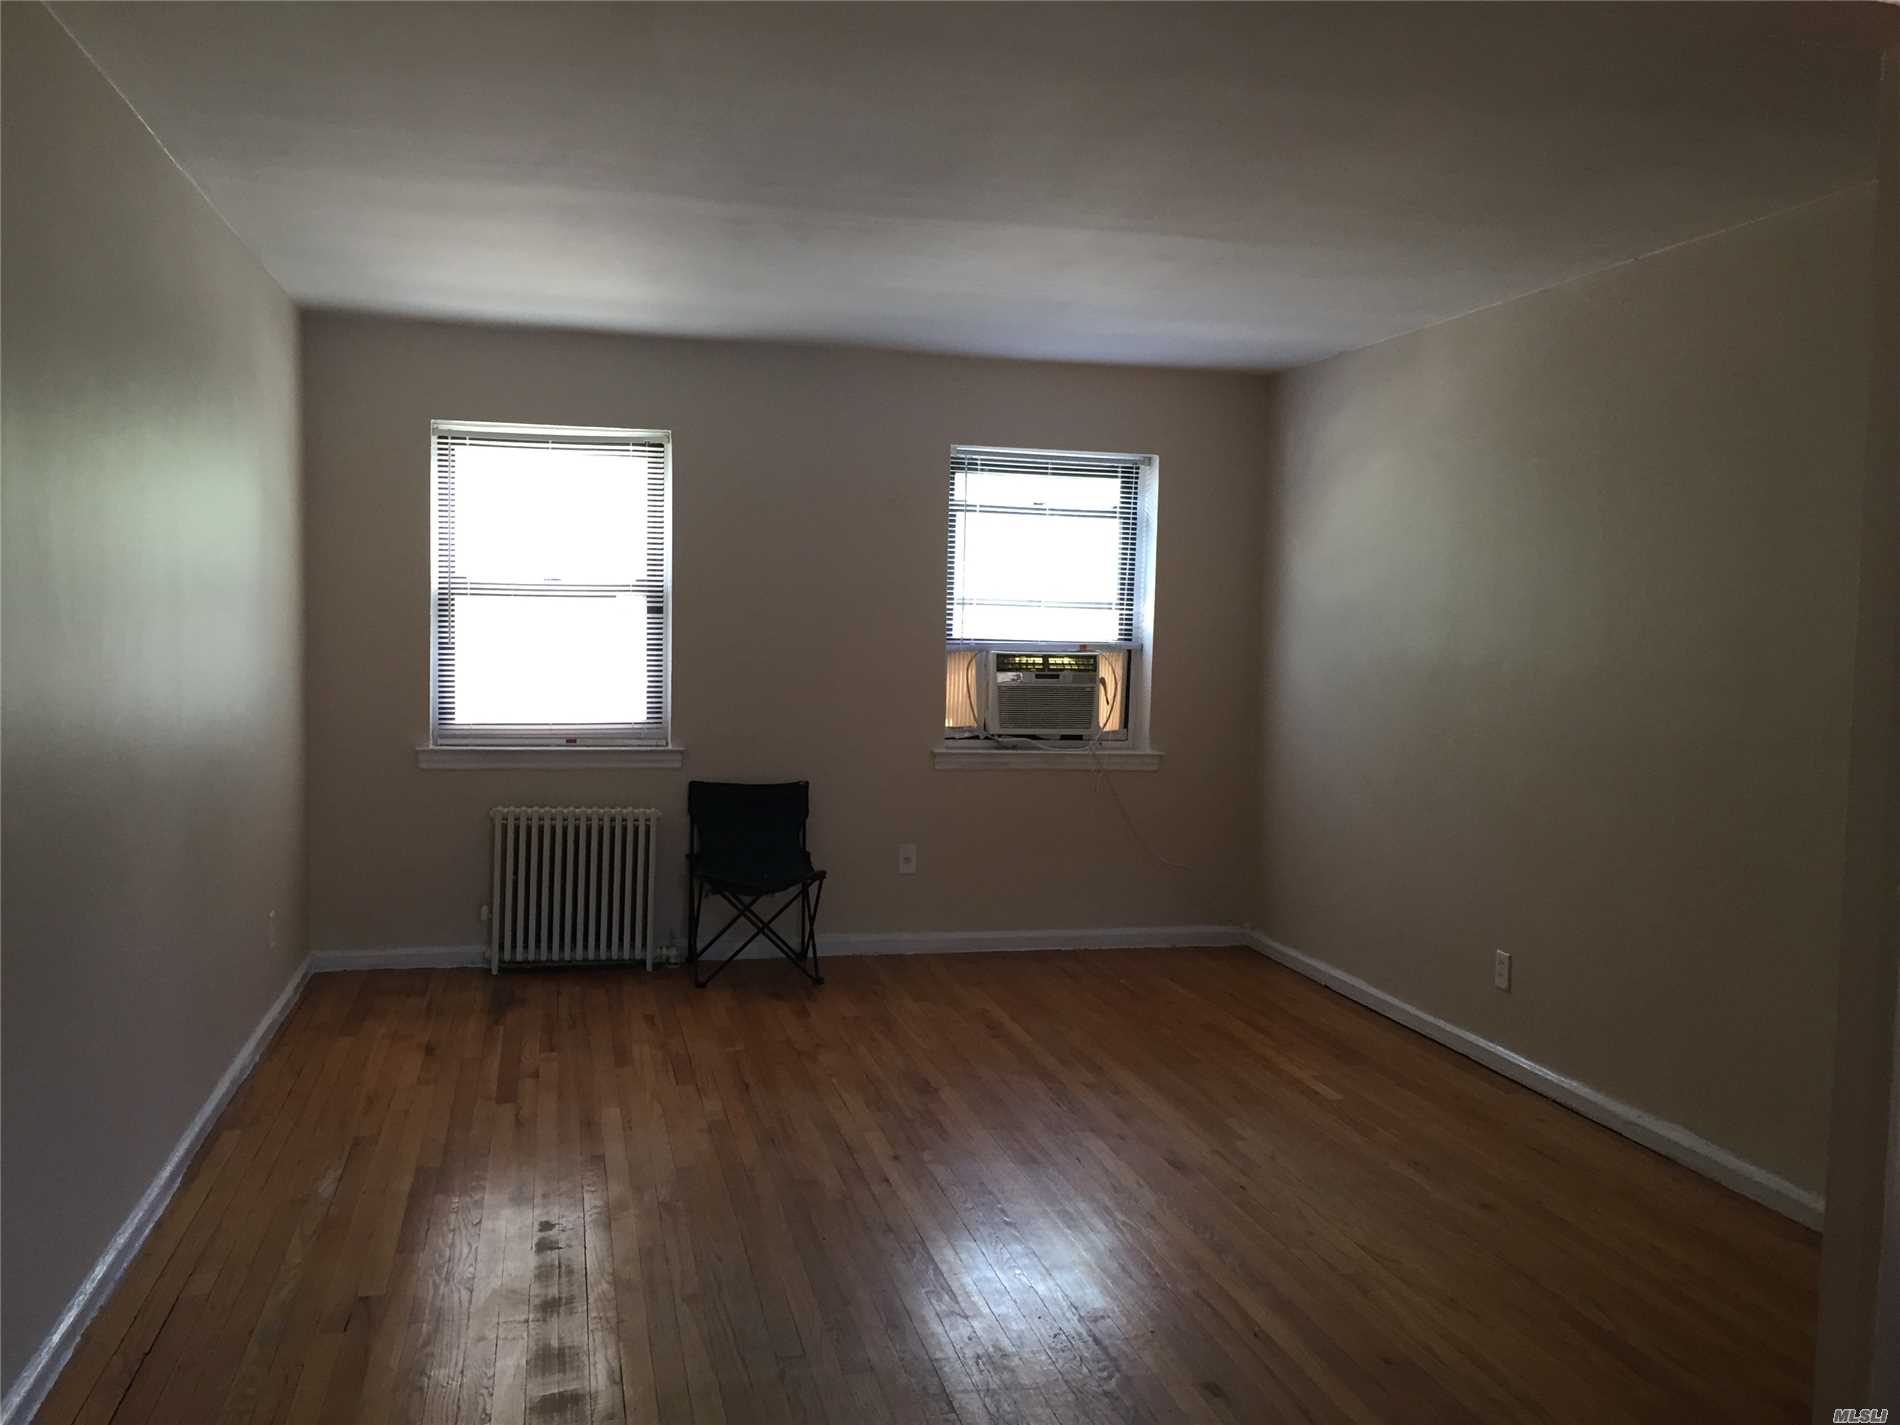 Updated Unit in Jeffery Gardens. Move-In-Ready on High 1st Floor. Laundry Room on Premises, Small Pets OK with Board Approval. Olympic Size Pool in Complex. Near to Bayside LIRR, The Q12, 13, , 27, 31 and Express Bus Qm3.